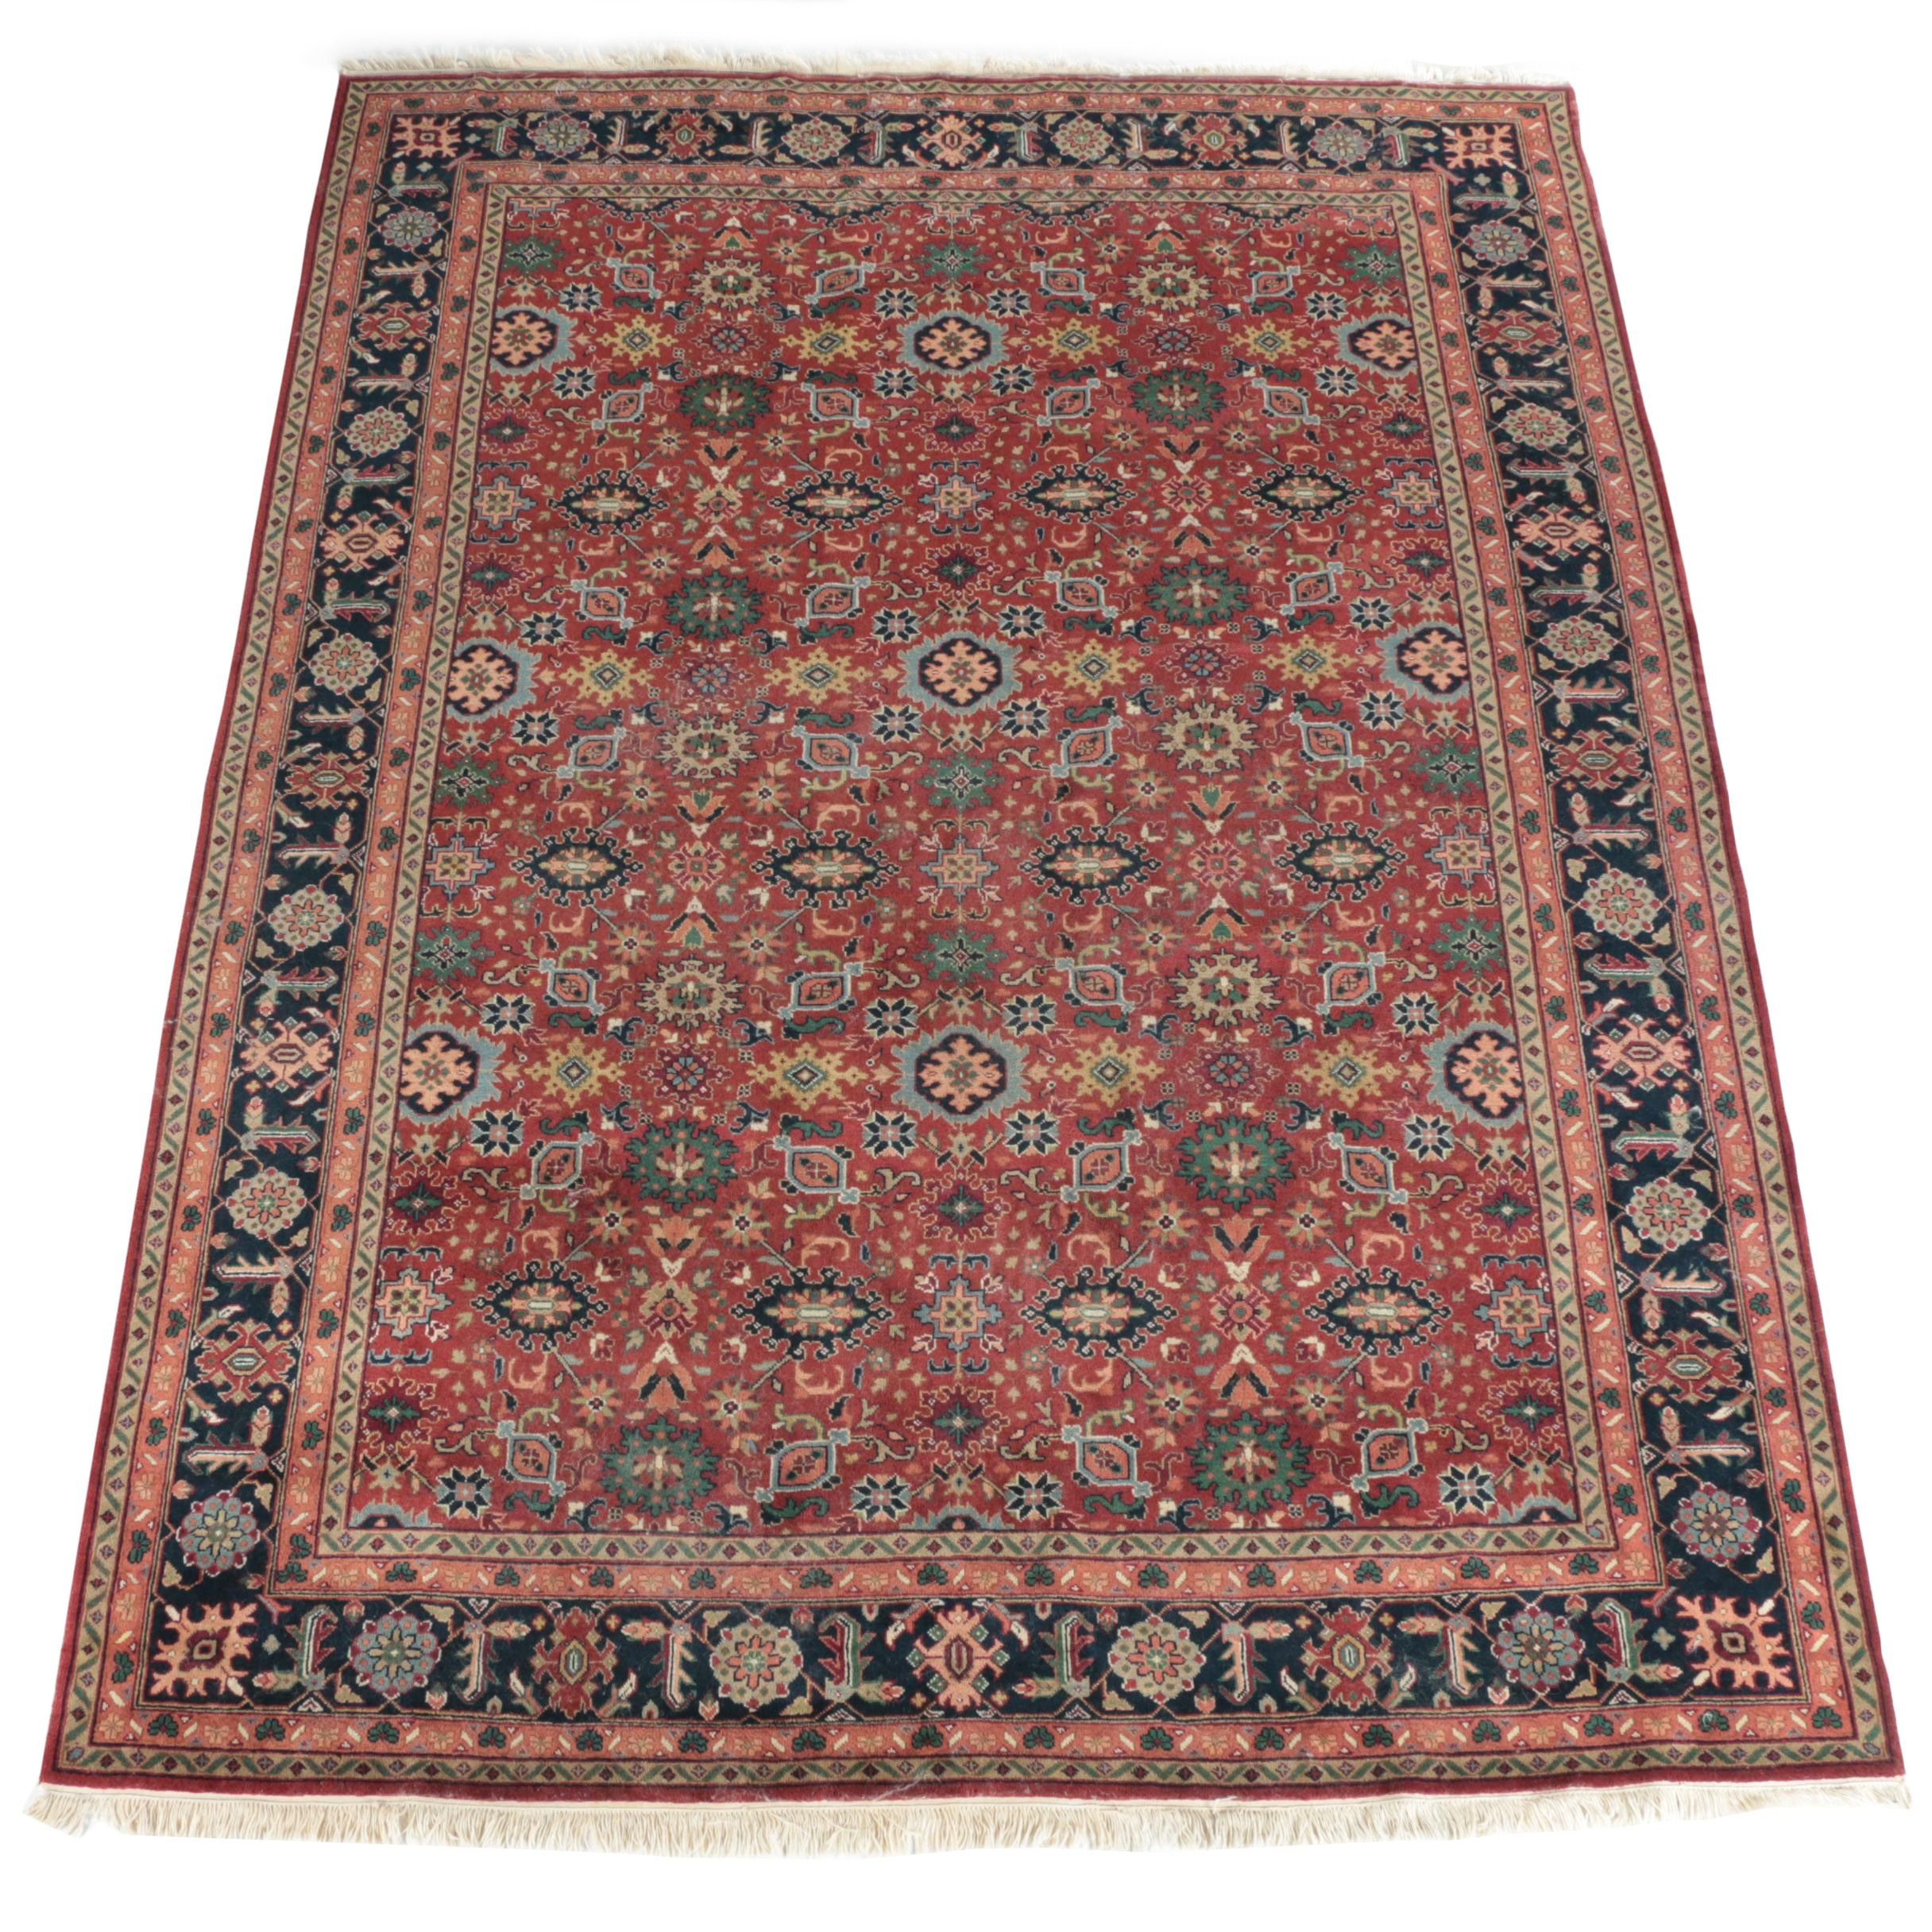 Hand-Knotted Pakistani Caucasian Wool Area Rug